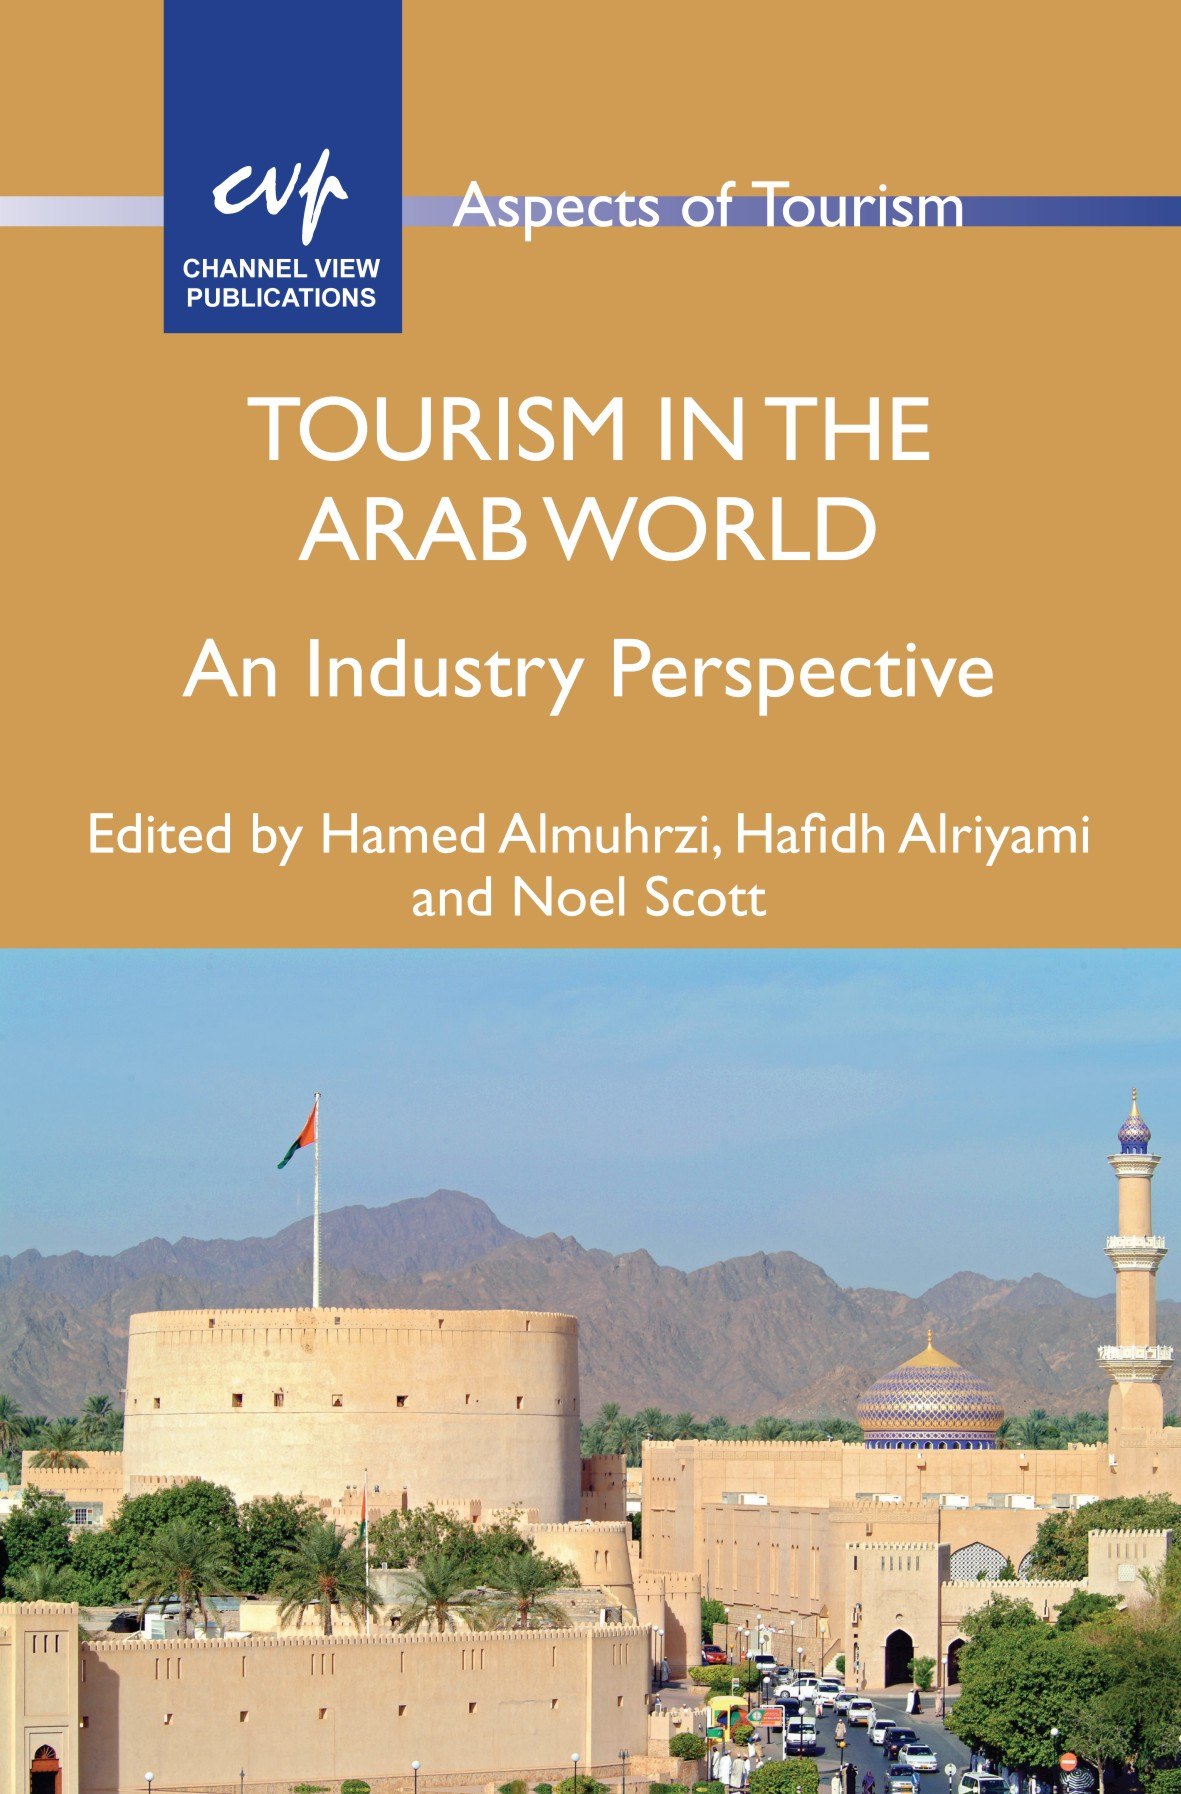 Tourism Destinations The Great Potential Of Arab Tourism Destinations Channel View